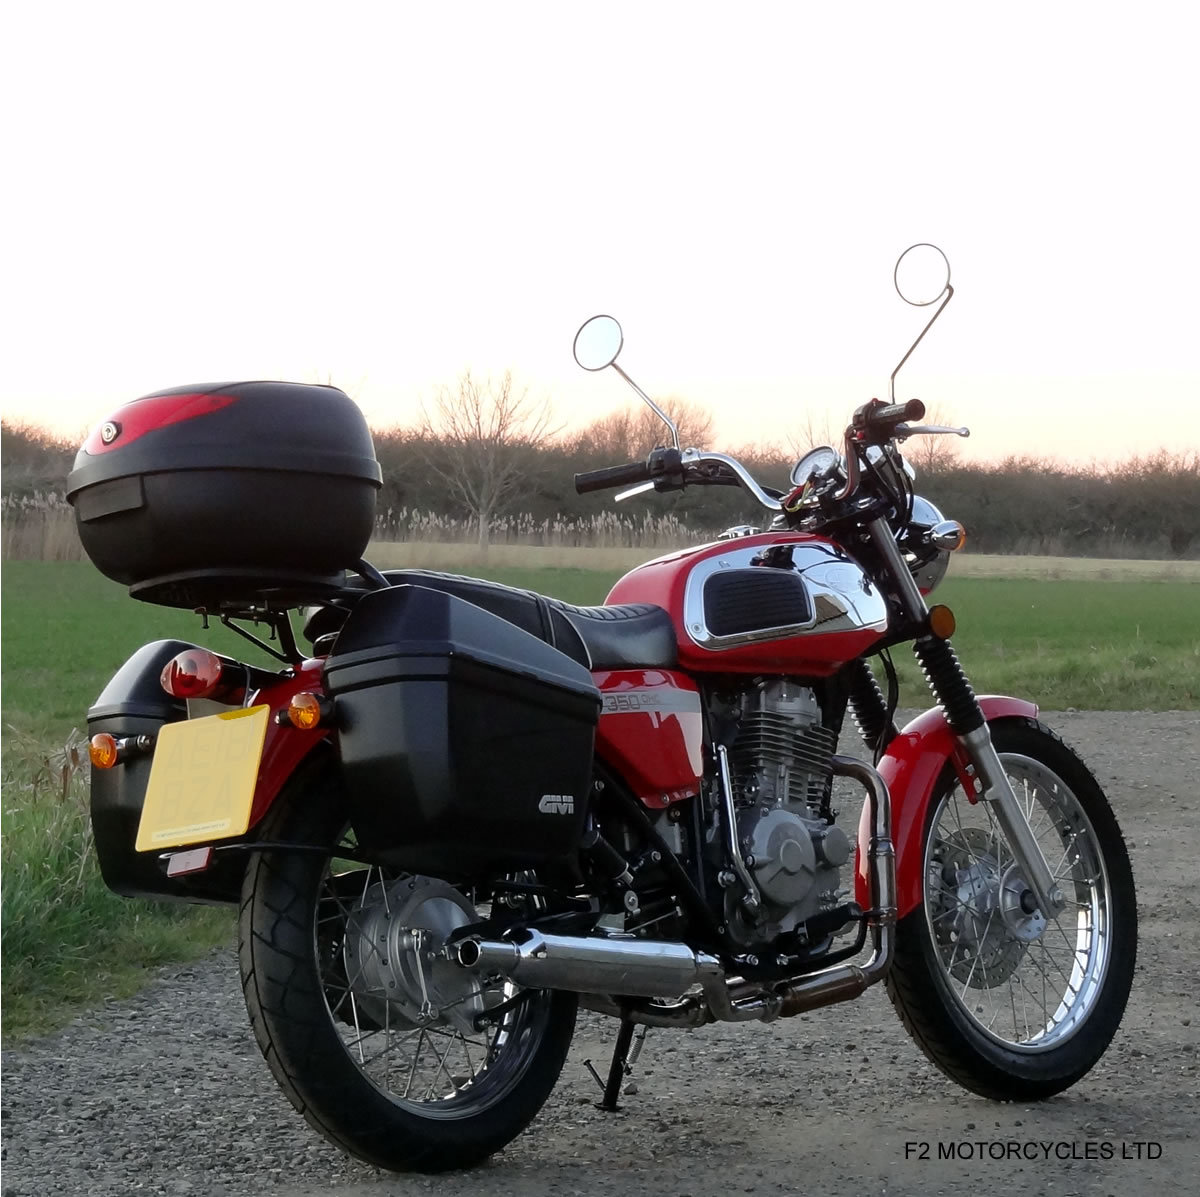 2018 Jawa 350 OHC, One owner, near perfect, ready to ride SOLD (picture 4 of 6)